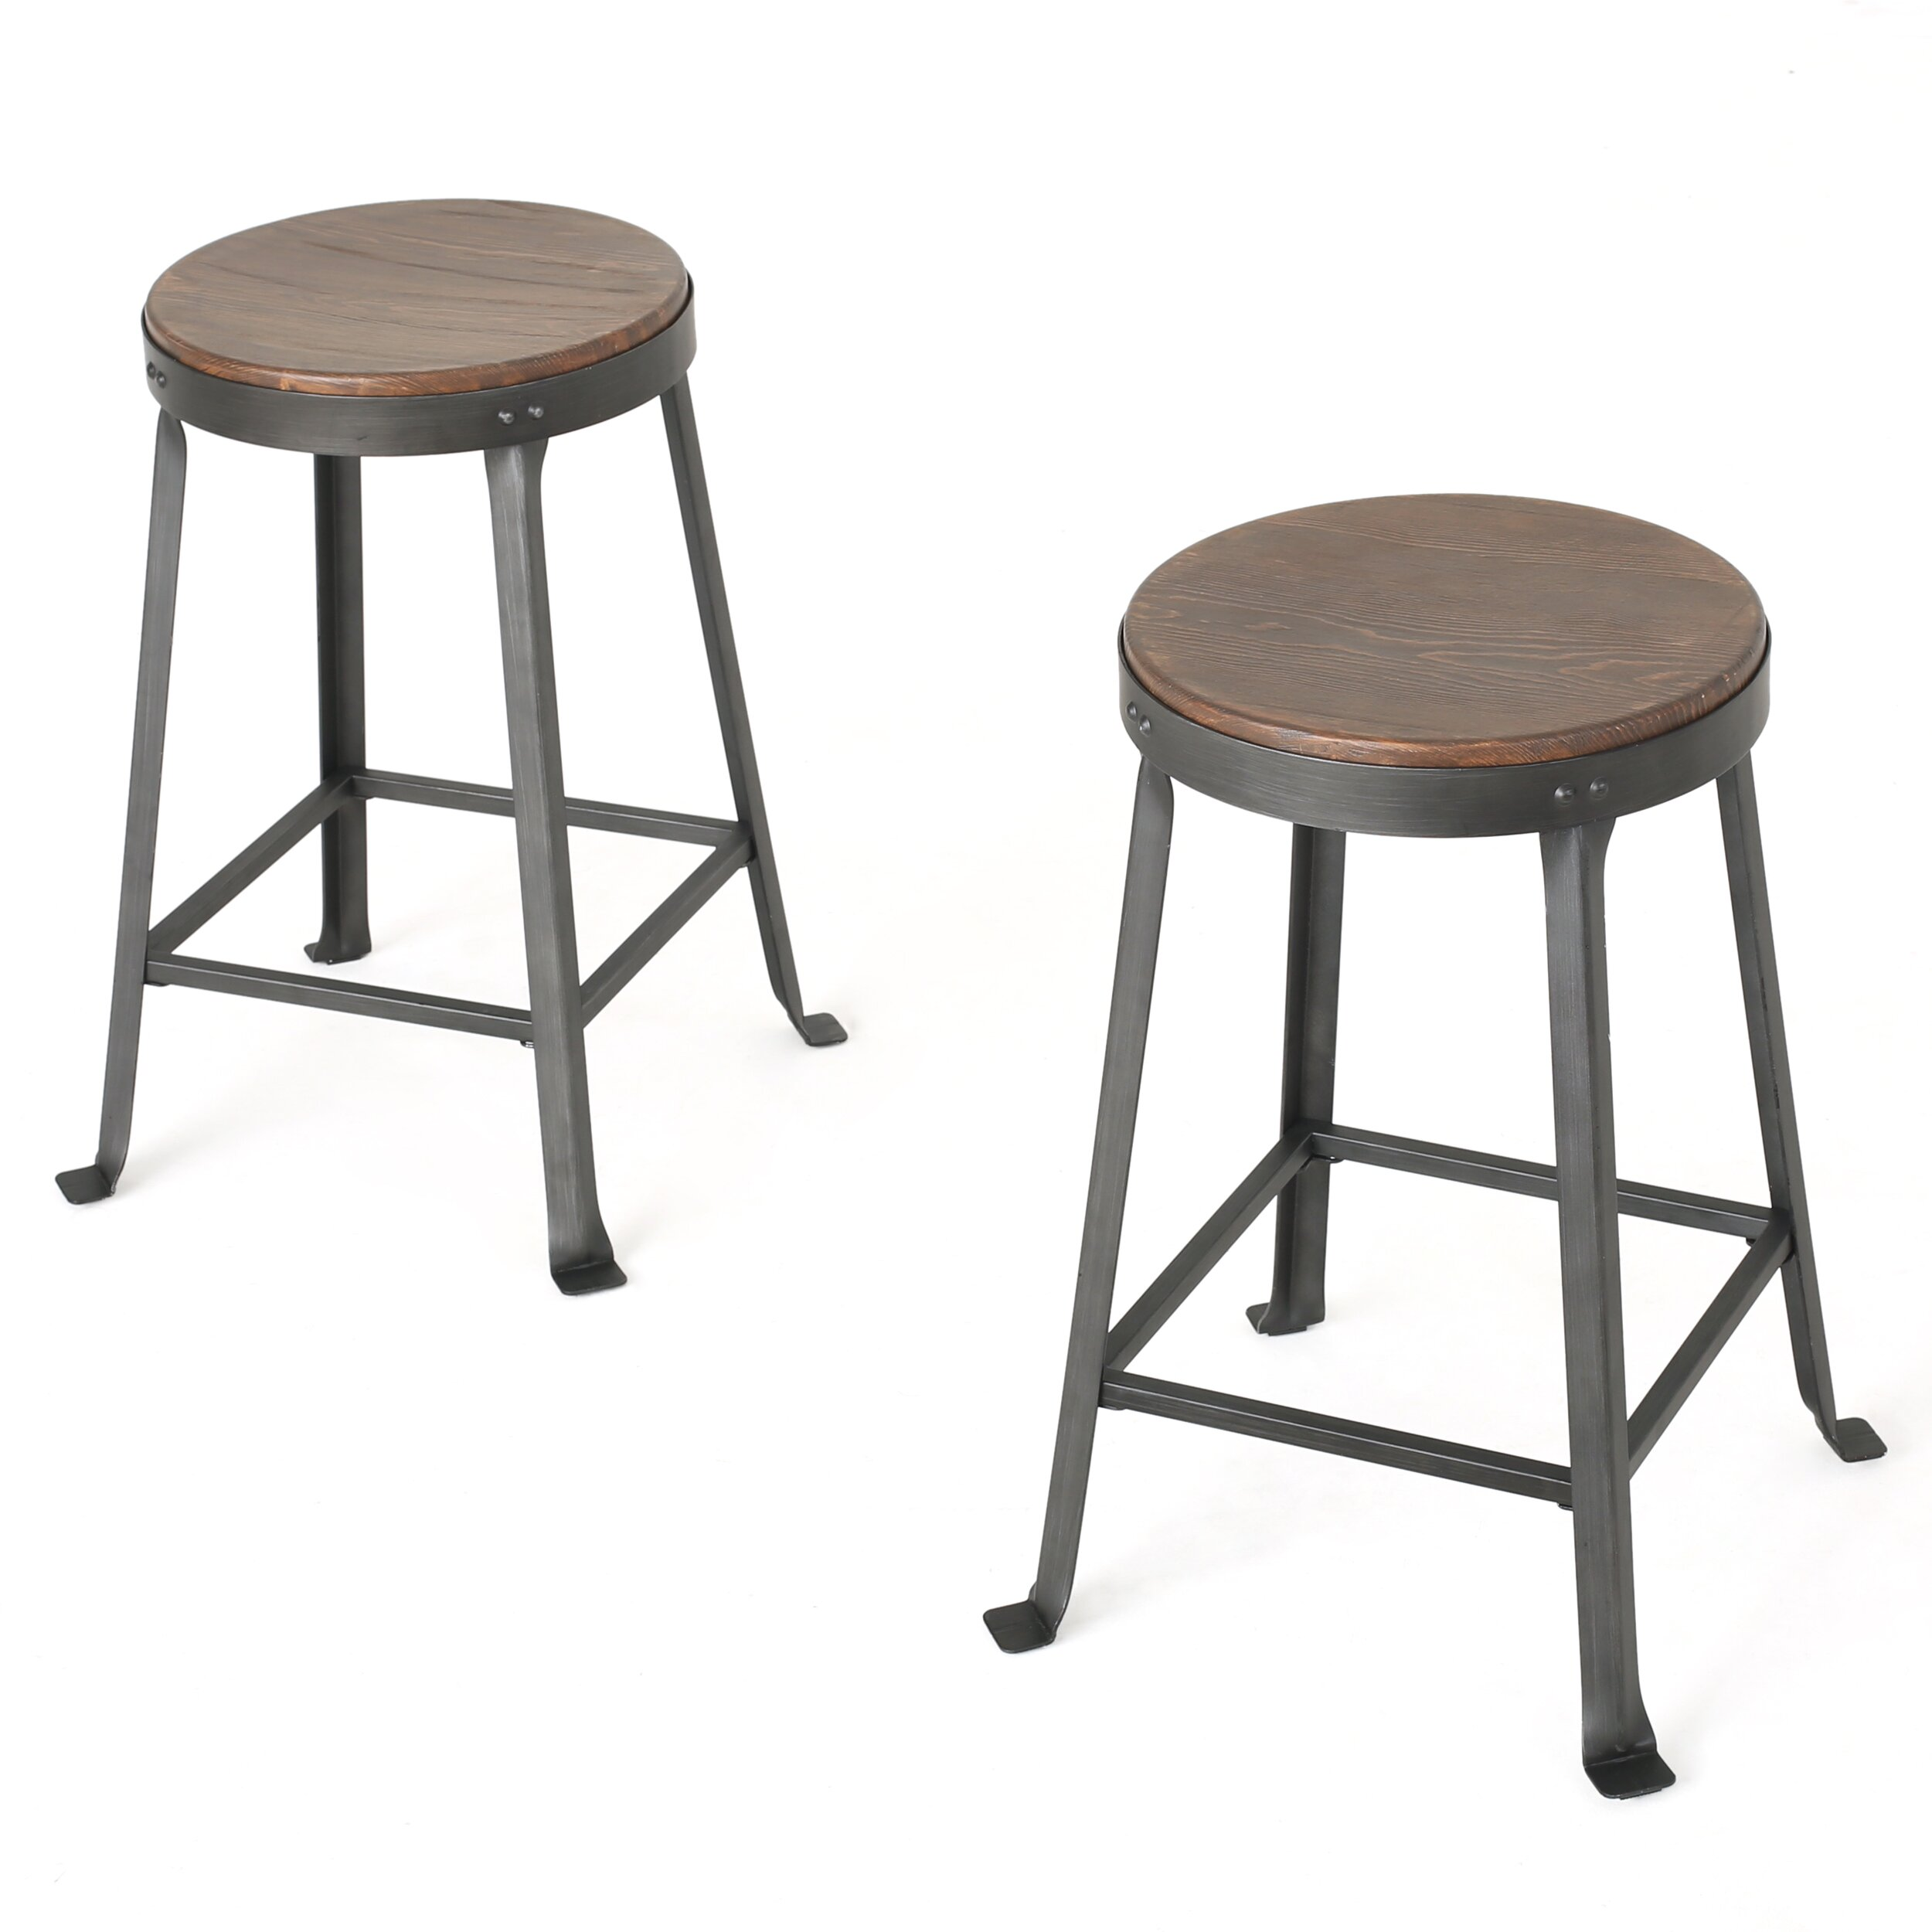 "Laurel Foundry Modern Farmhouse Nathalie 24"" Bar Stool & Reviews"